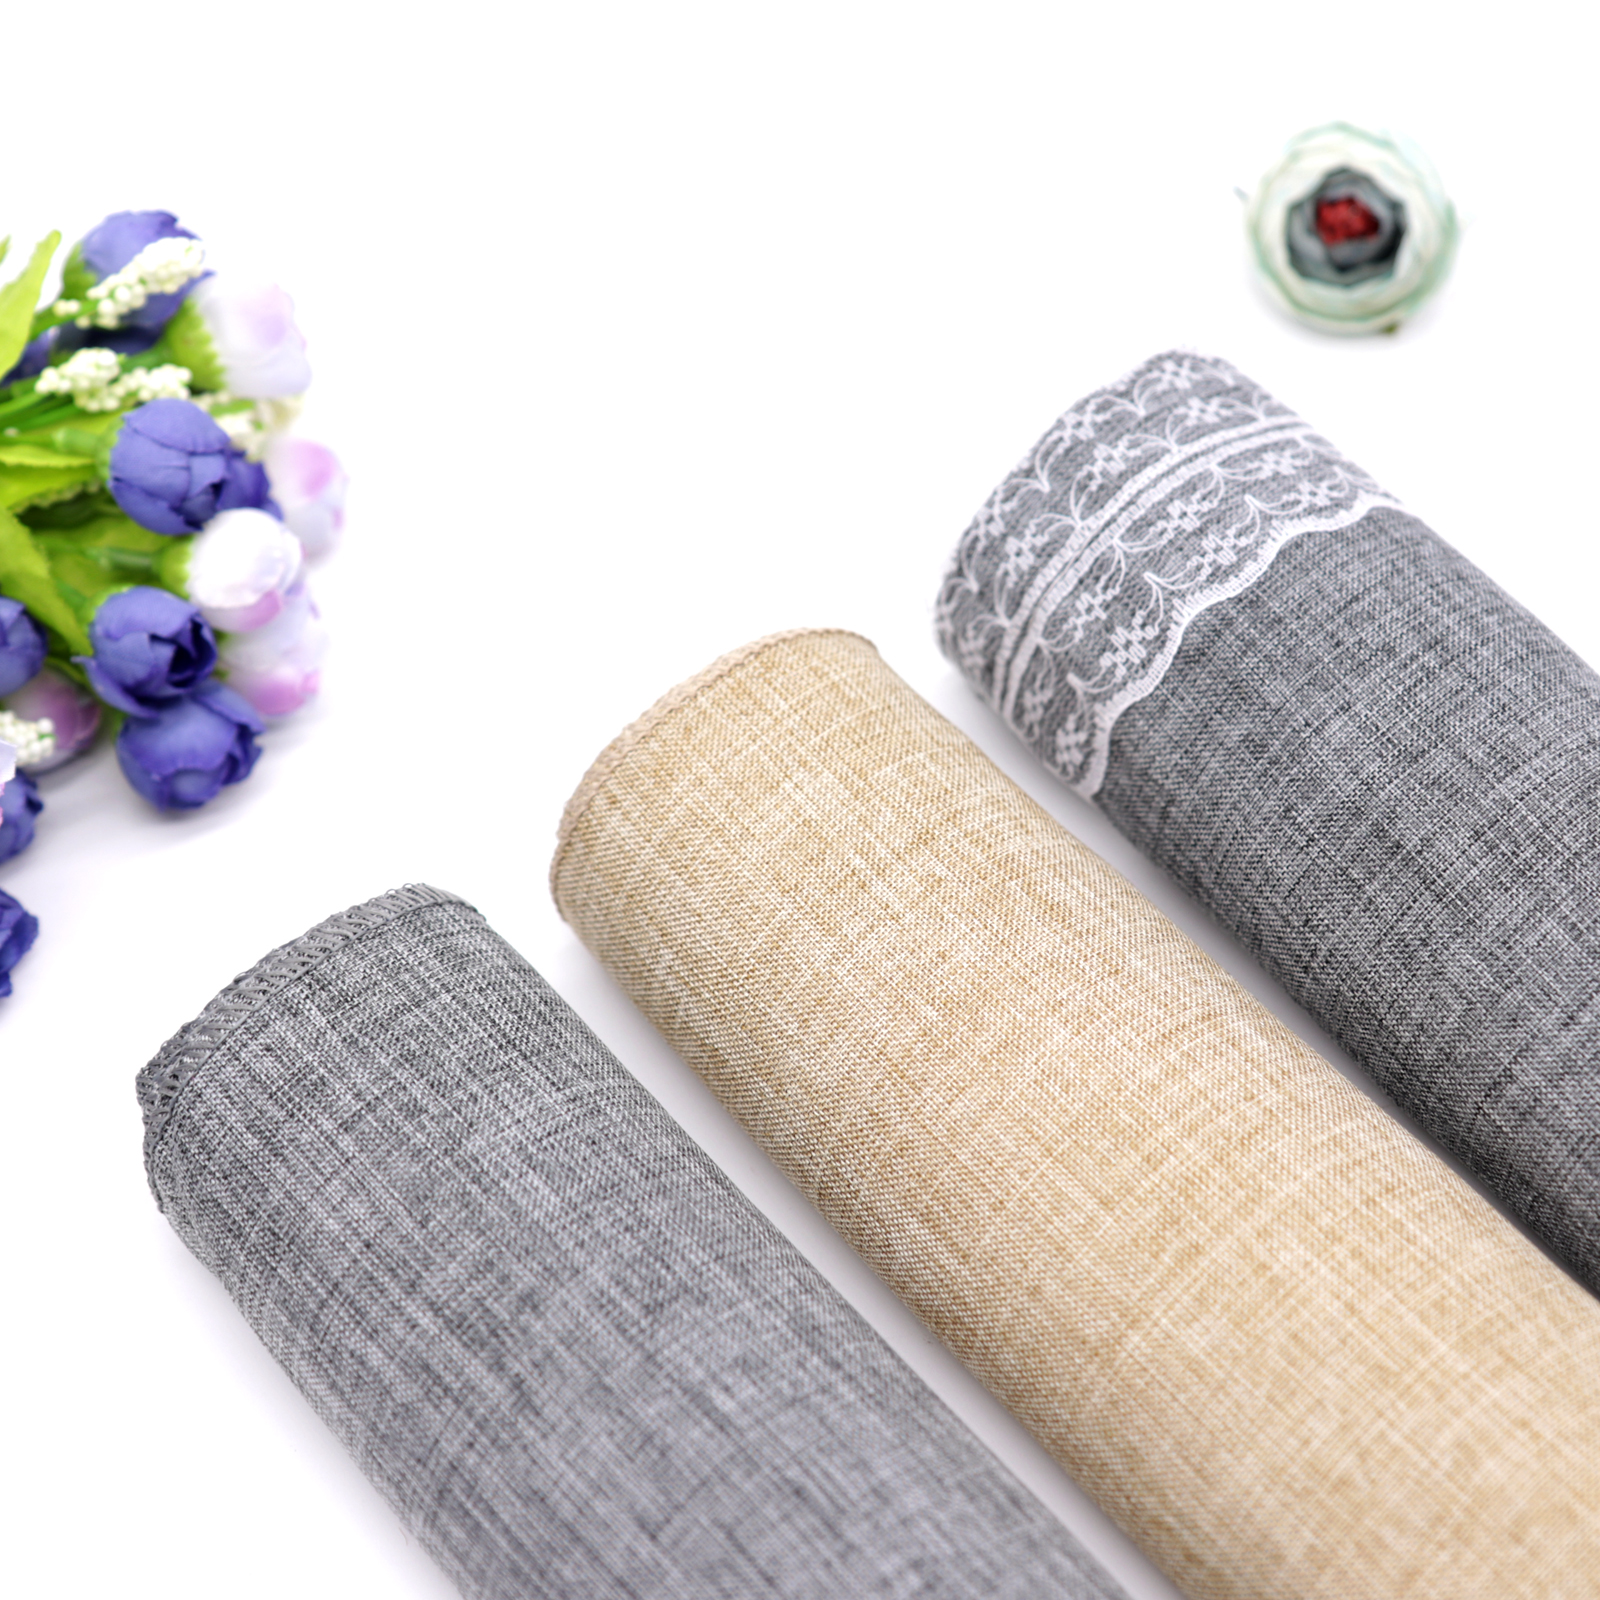 Gray Khaki Burlap Table Runner Jute Imitated Linen Lace Tablecloth Rustic Wedding Party Banquet Table Overlay Home Textiles